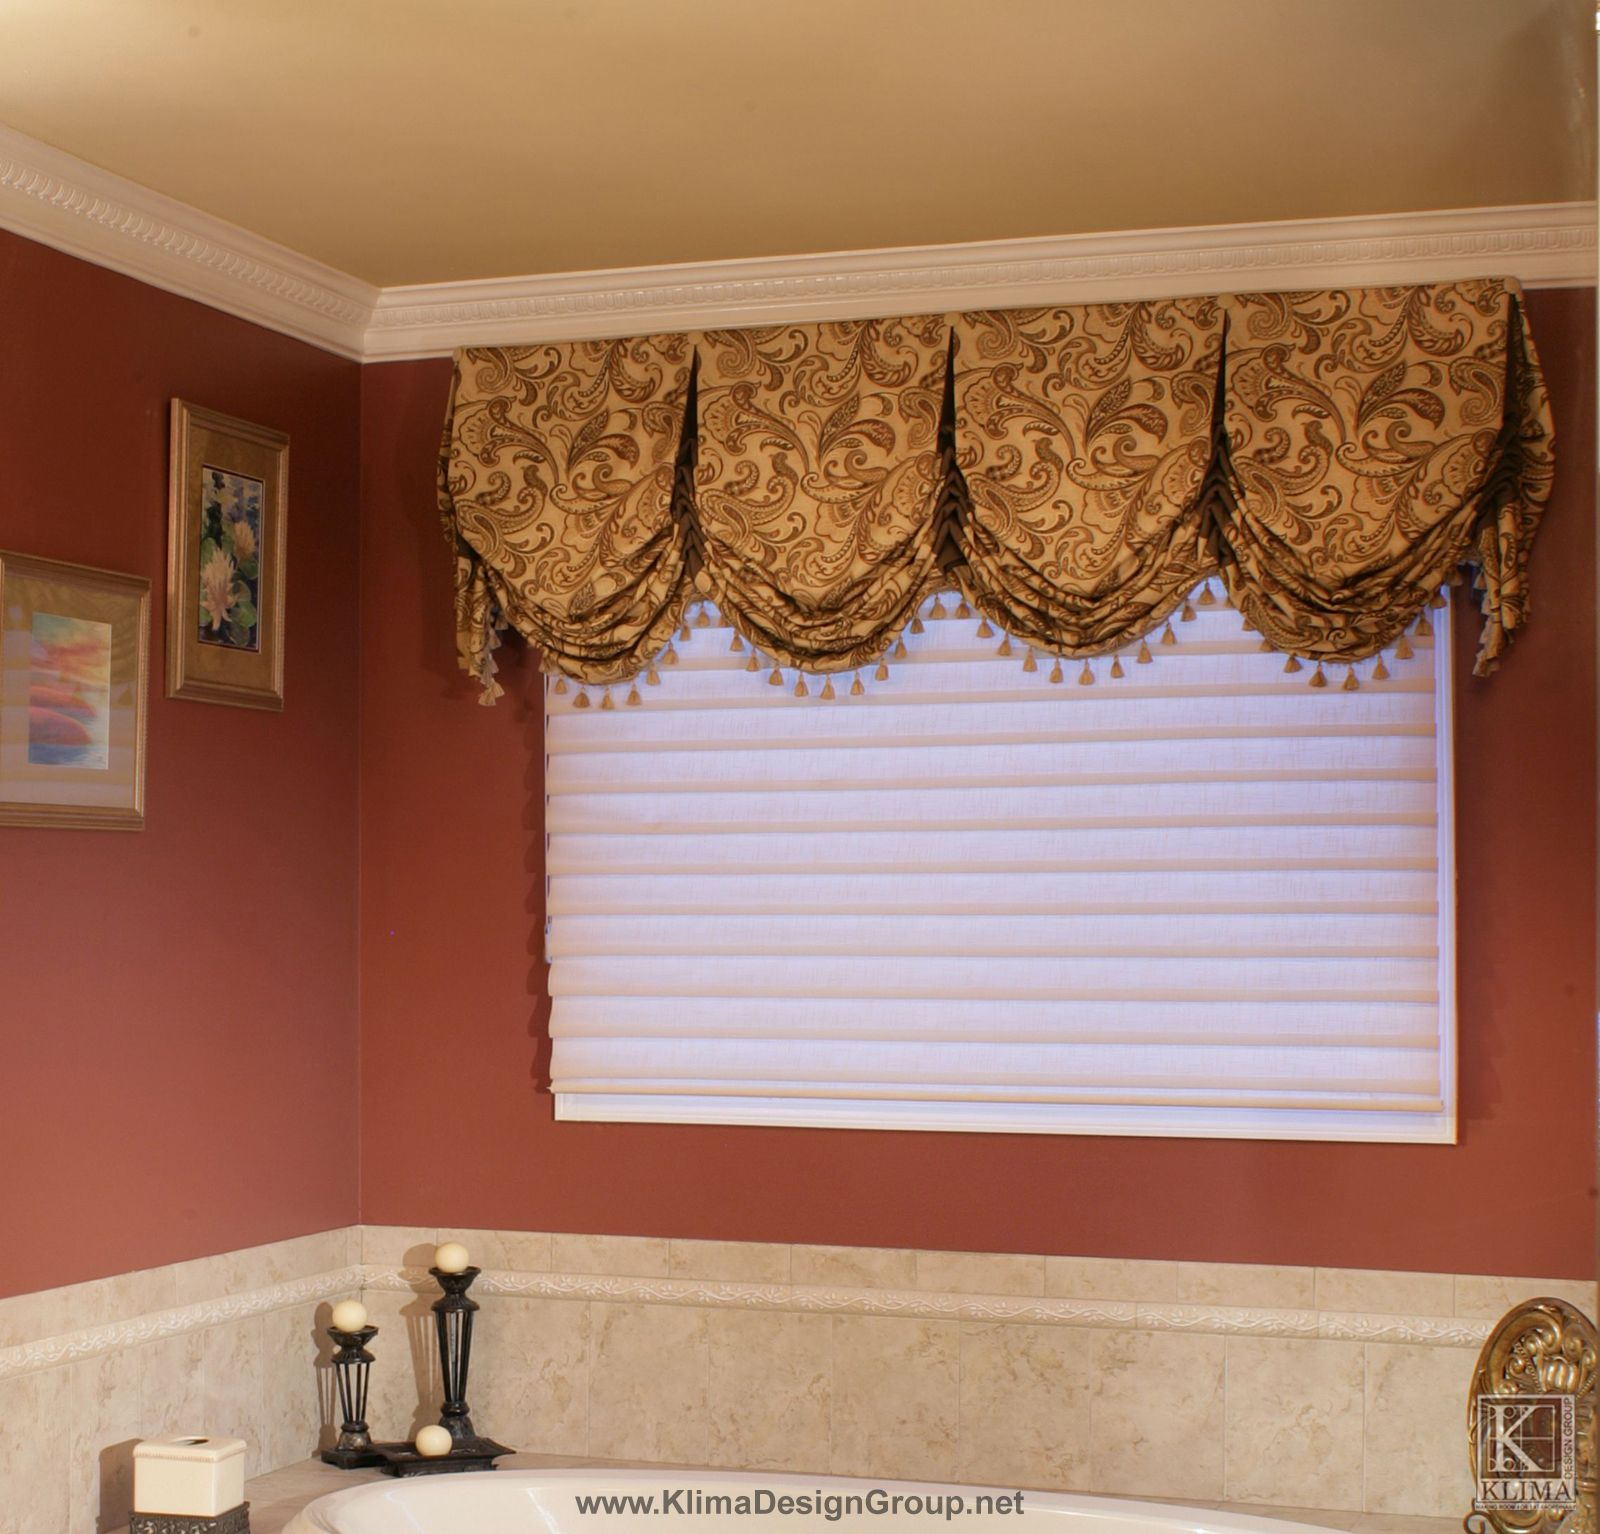 Bathroom valance ideas - Custom Bathroom Valance With Contrast Trim And Buttons